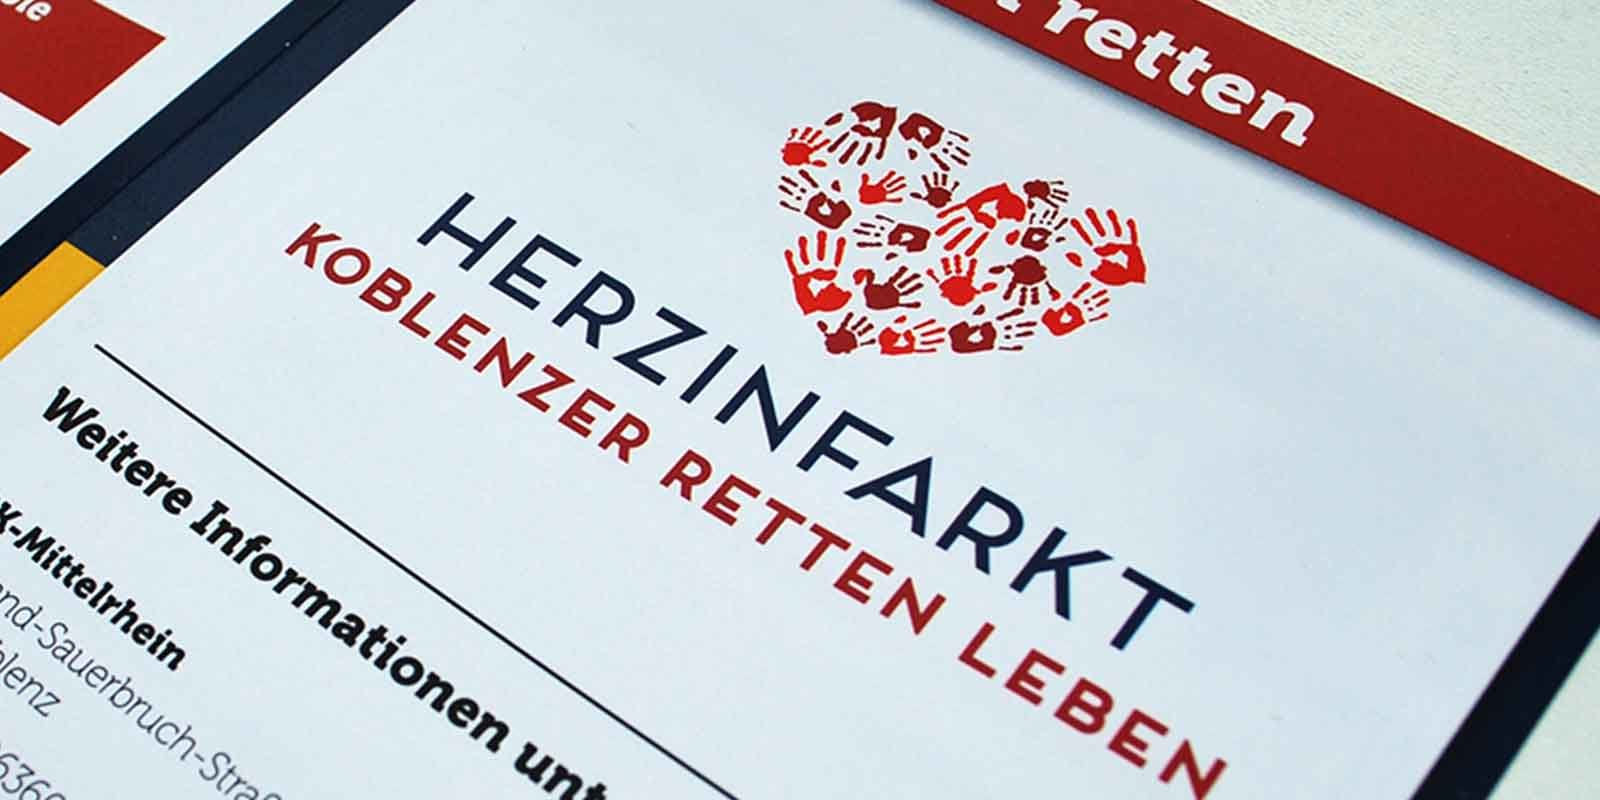 German Red Cross Campaign Designed by Kelly Gold - Herzinfarkt Koblenzer Retten Leben